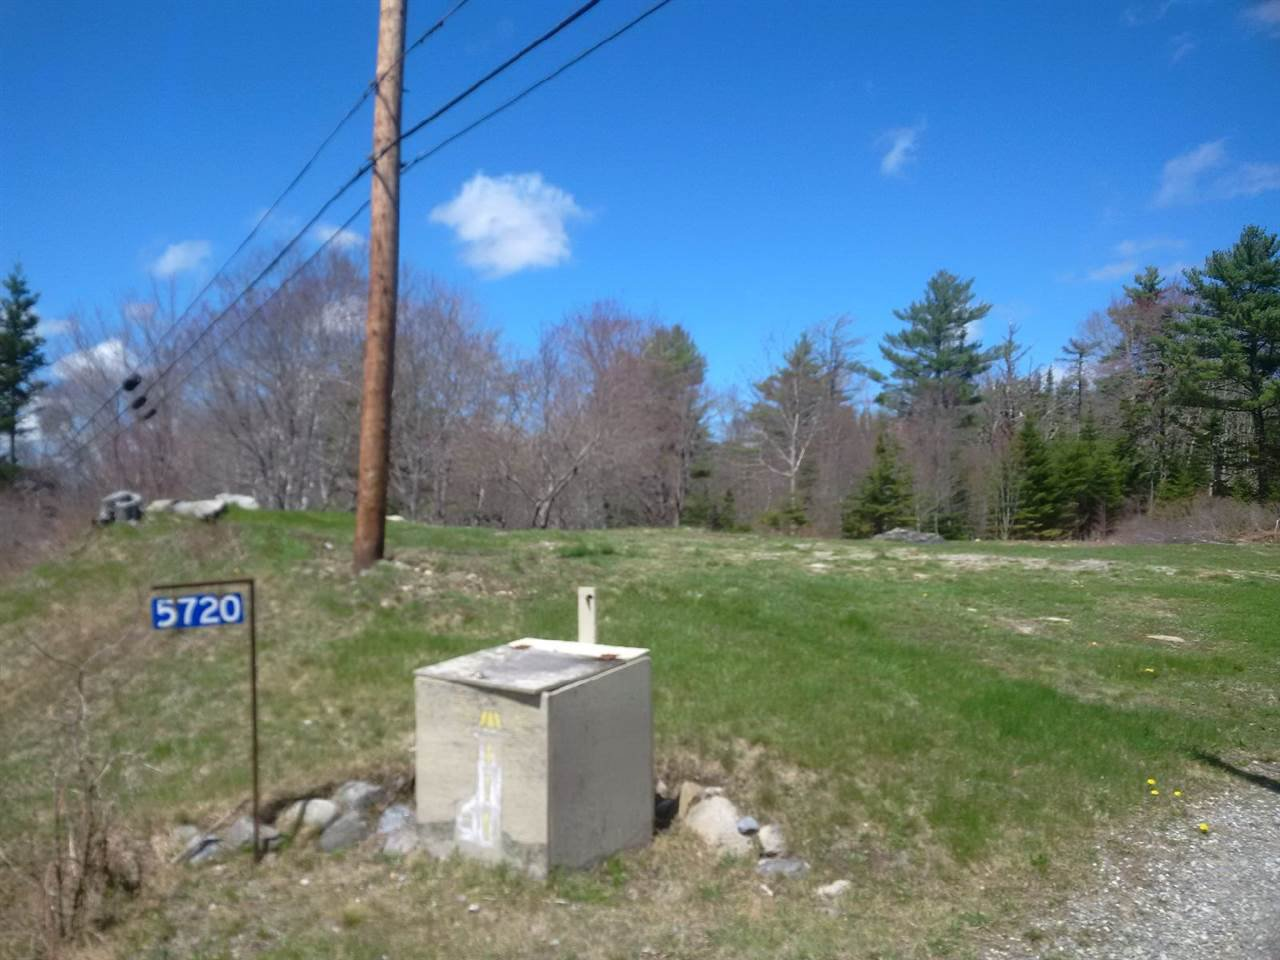 Main Photo: 5720 Highway 3 in East Jordan: 407-Shelburne County Vacant Land for sale (South Shore)  : MLS®# 201708962